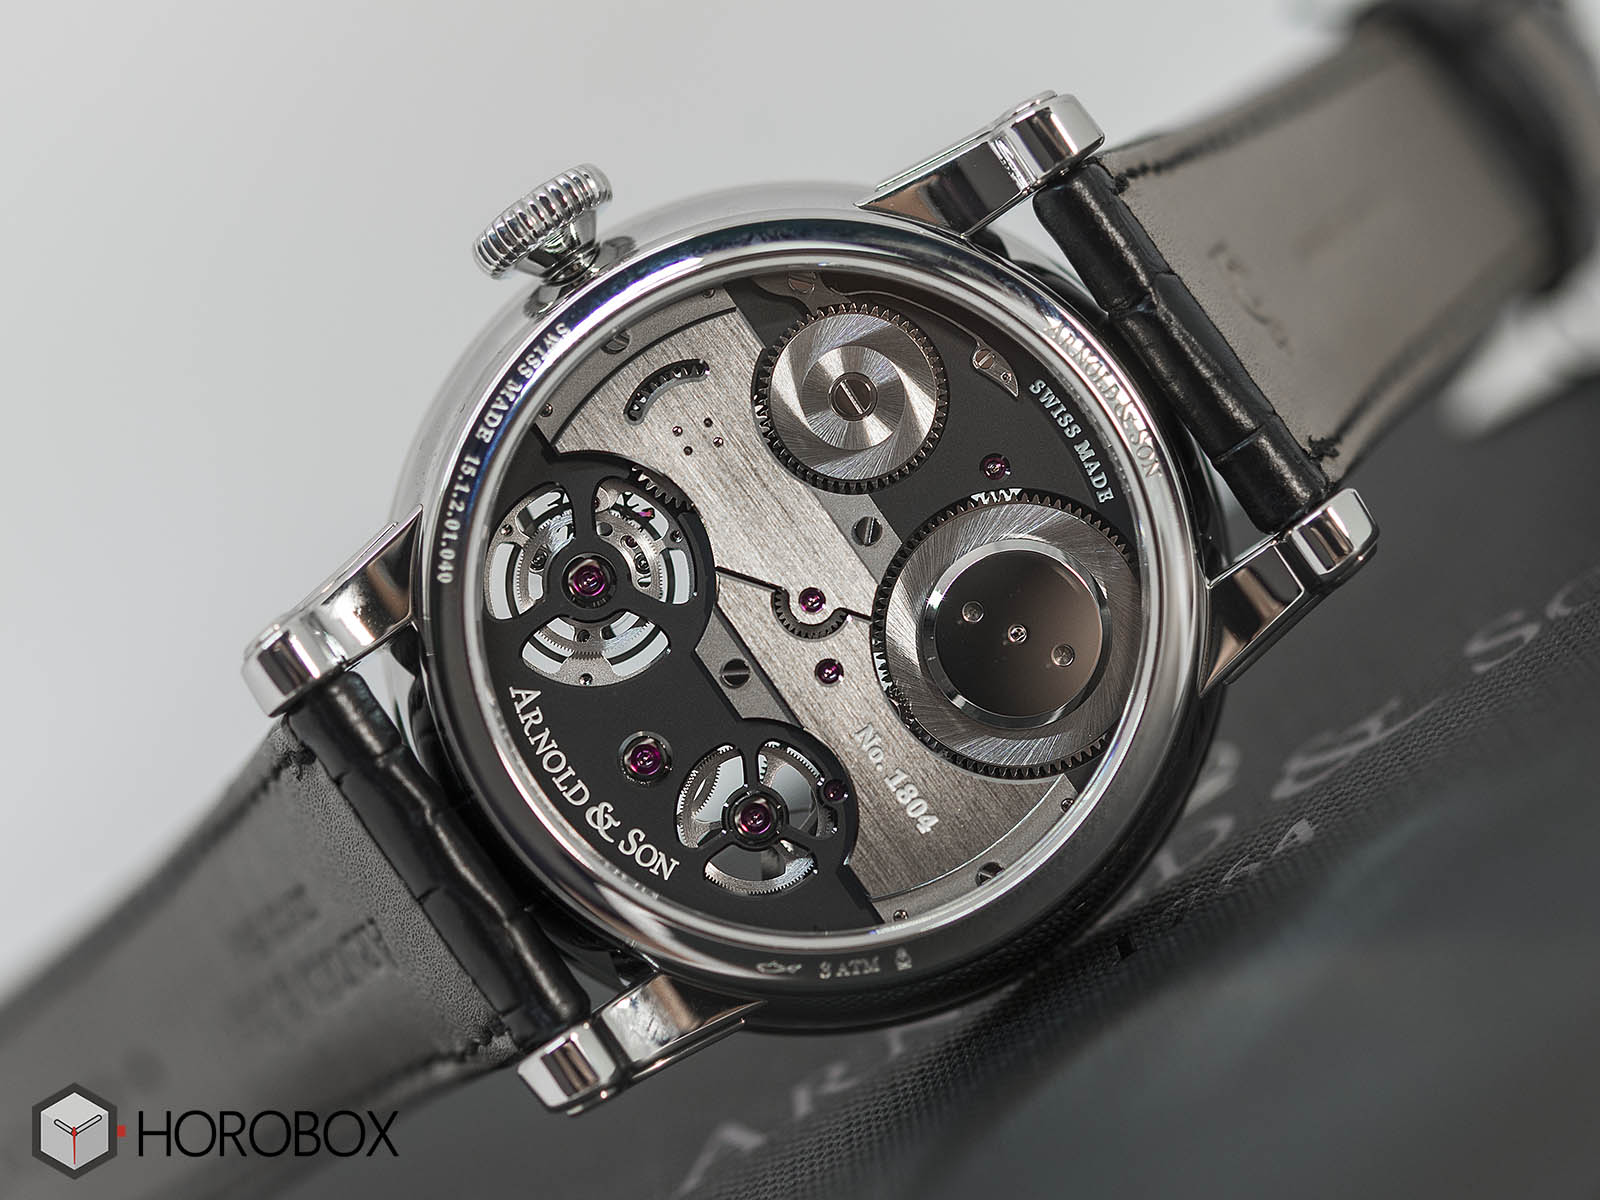 1etas-b01a-c113s-arnold-son-tourbillon-chronometer-no-36-tribute-edition-6.jpg